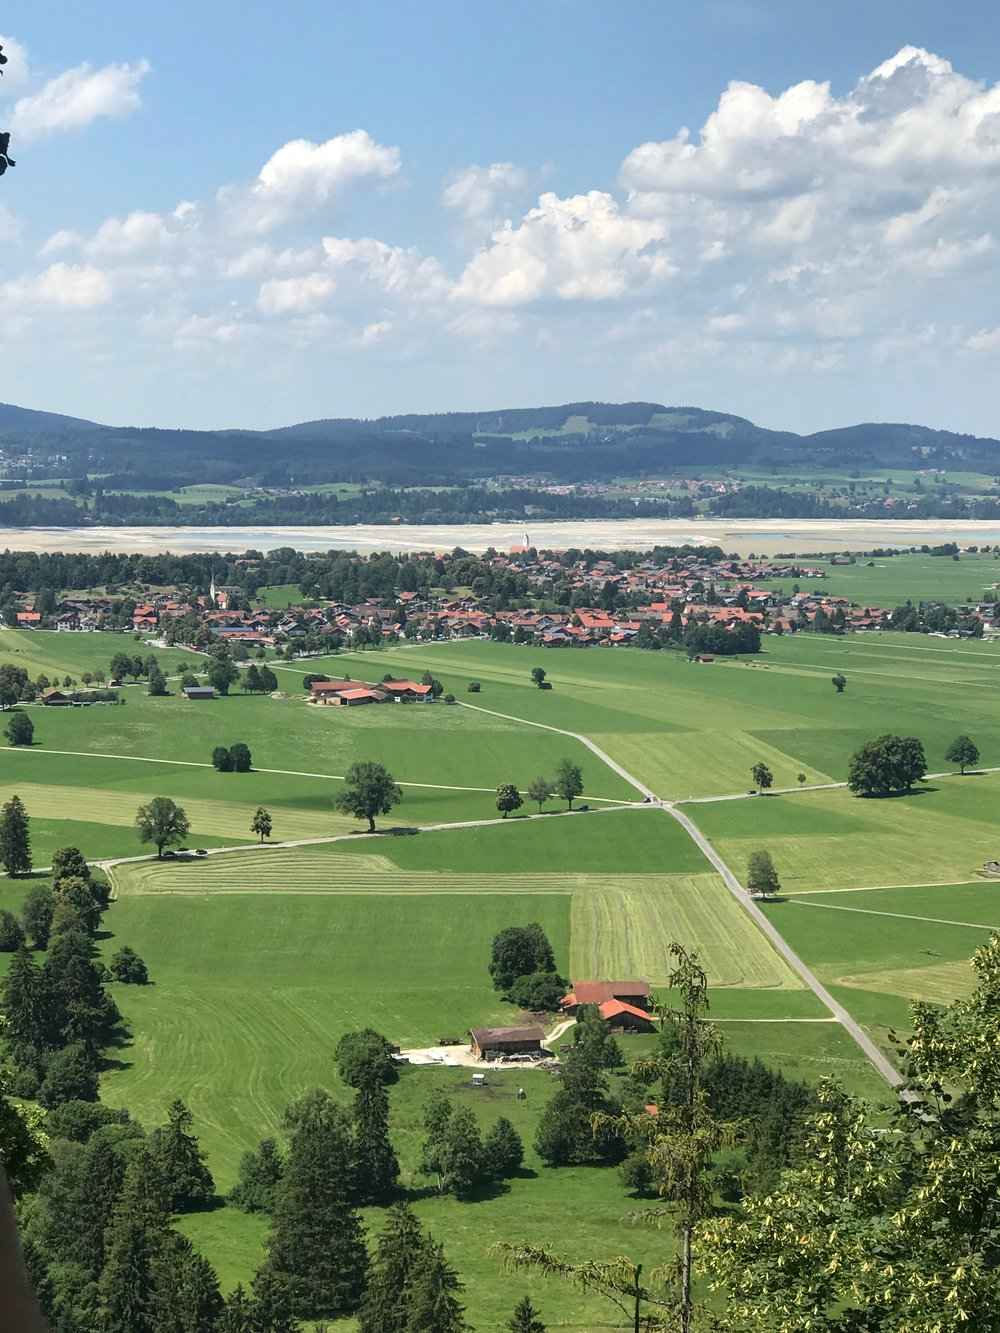 Countryside below Neuschwanstein